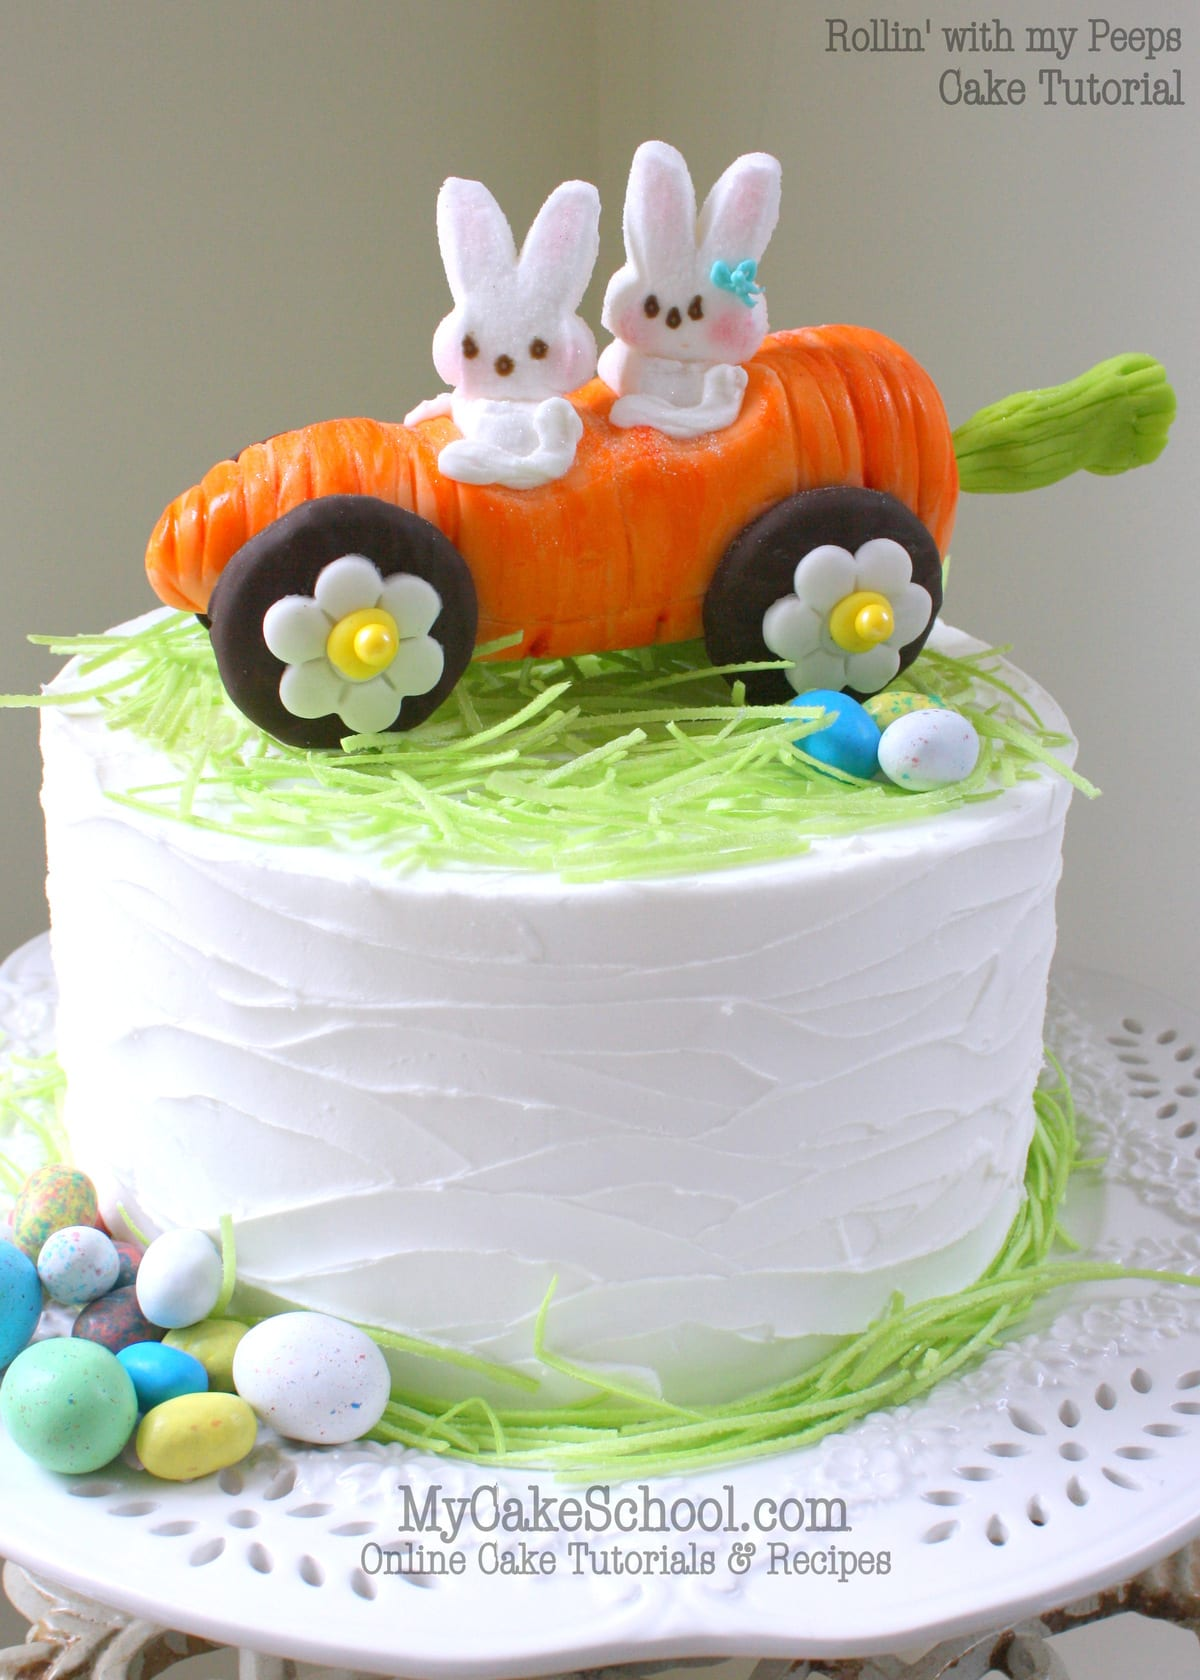 Rollin' with my Peeps! ADORABLE bunny and carrot car cake topper! Free tutorial by MyCakeSchool.com! Perfect for Easter cakes!